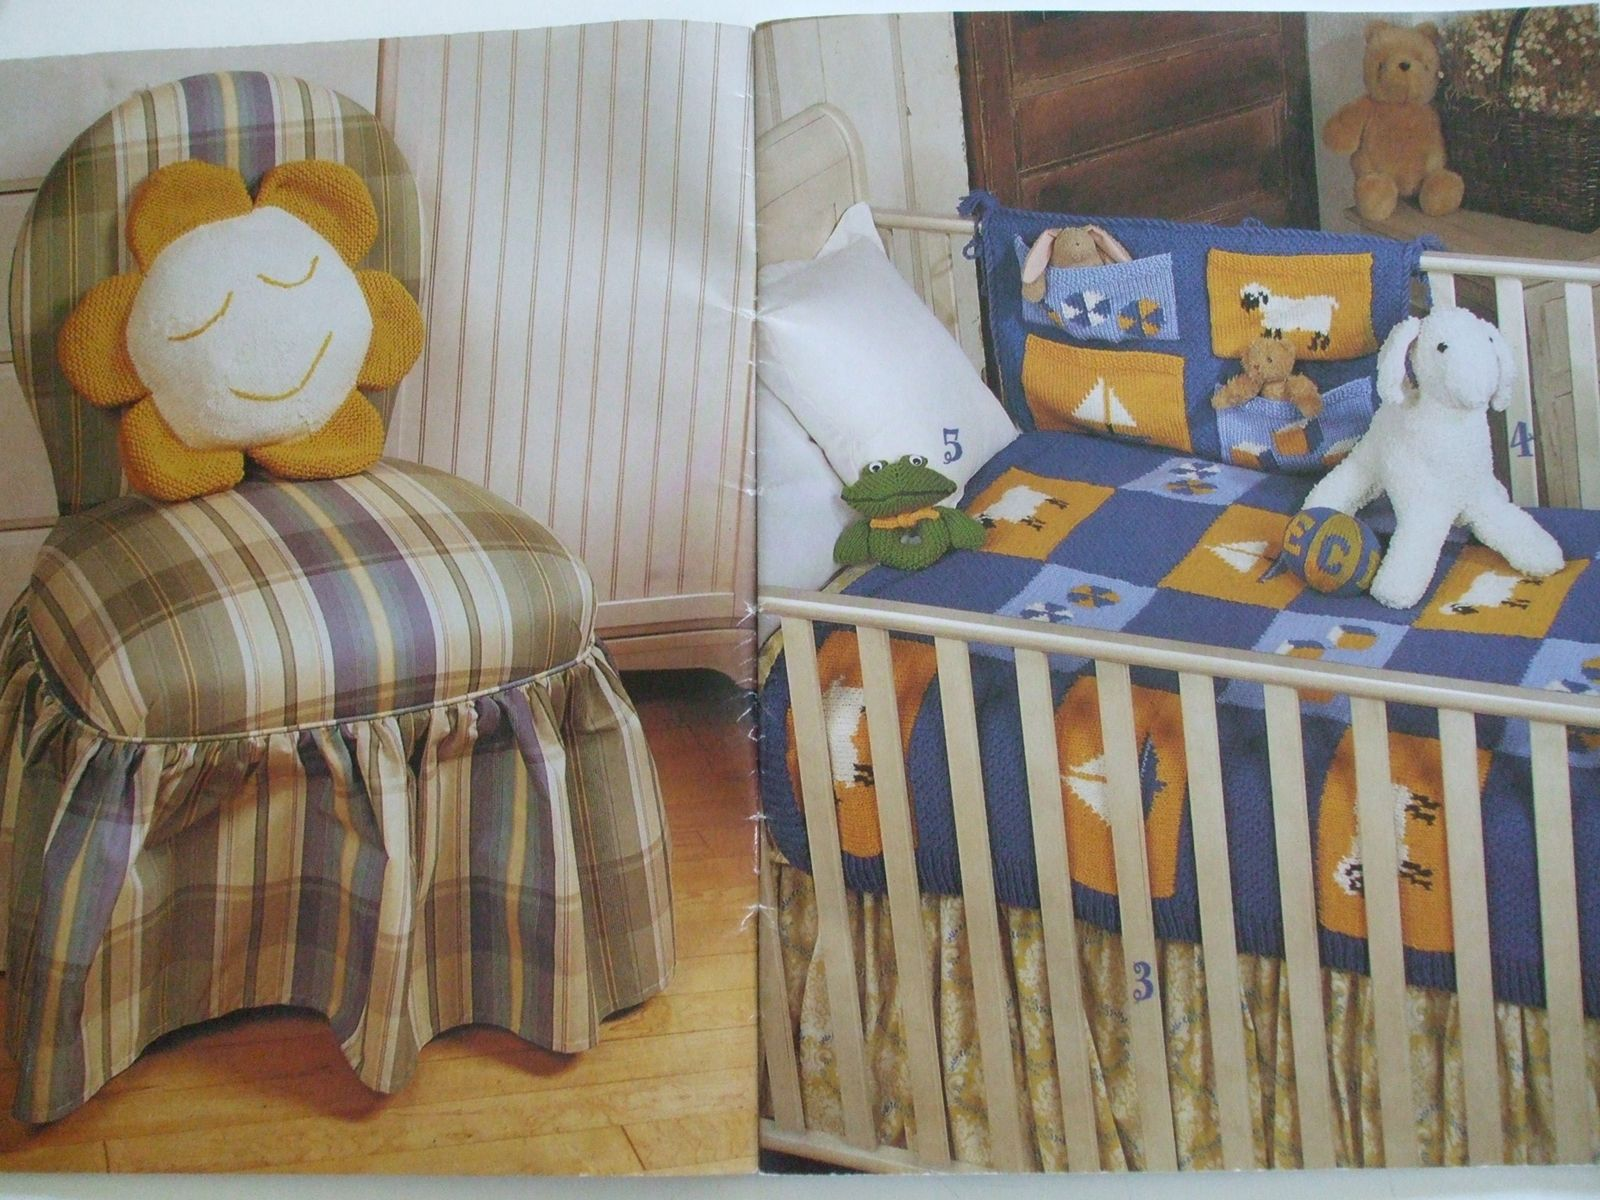 In My Room Patons 943 Knitting Patterns Pillow Nursery Set Laundry Bags Blanket Secondsilver Prices Us Include Shipping Canada